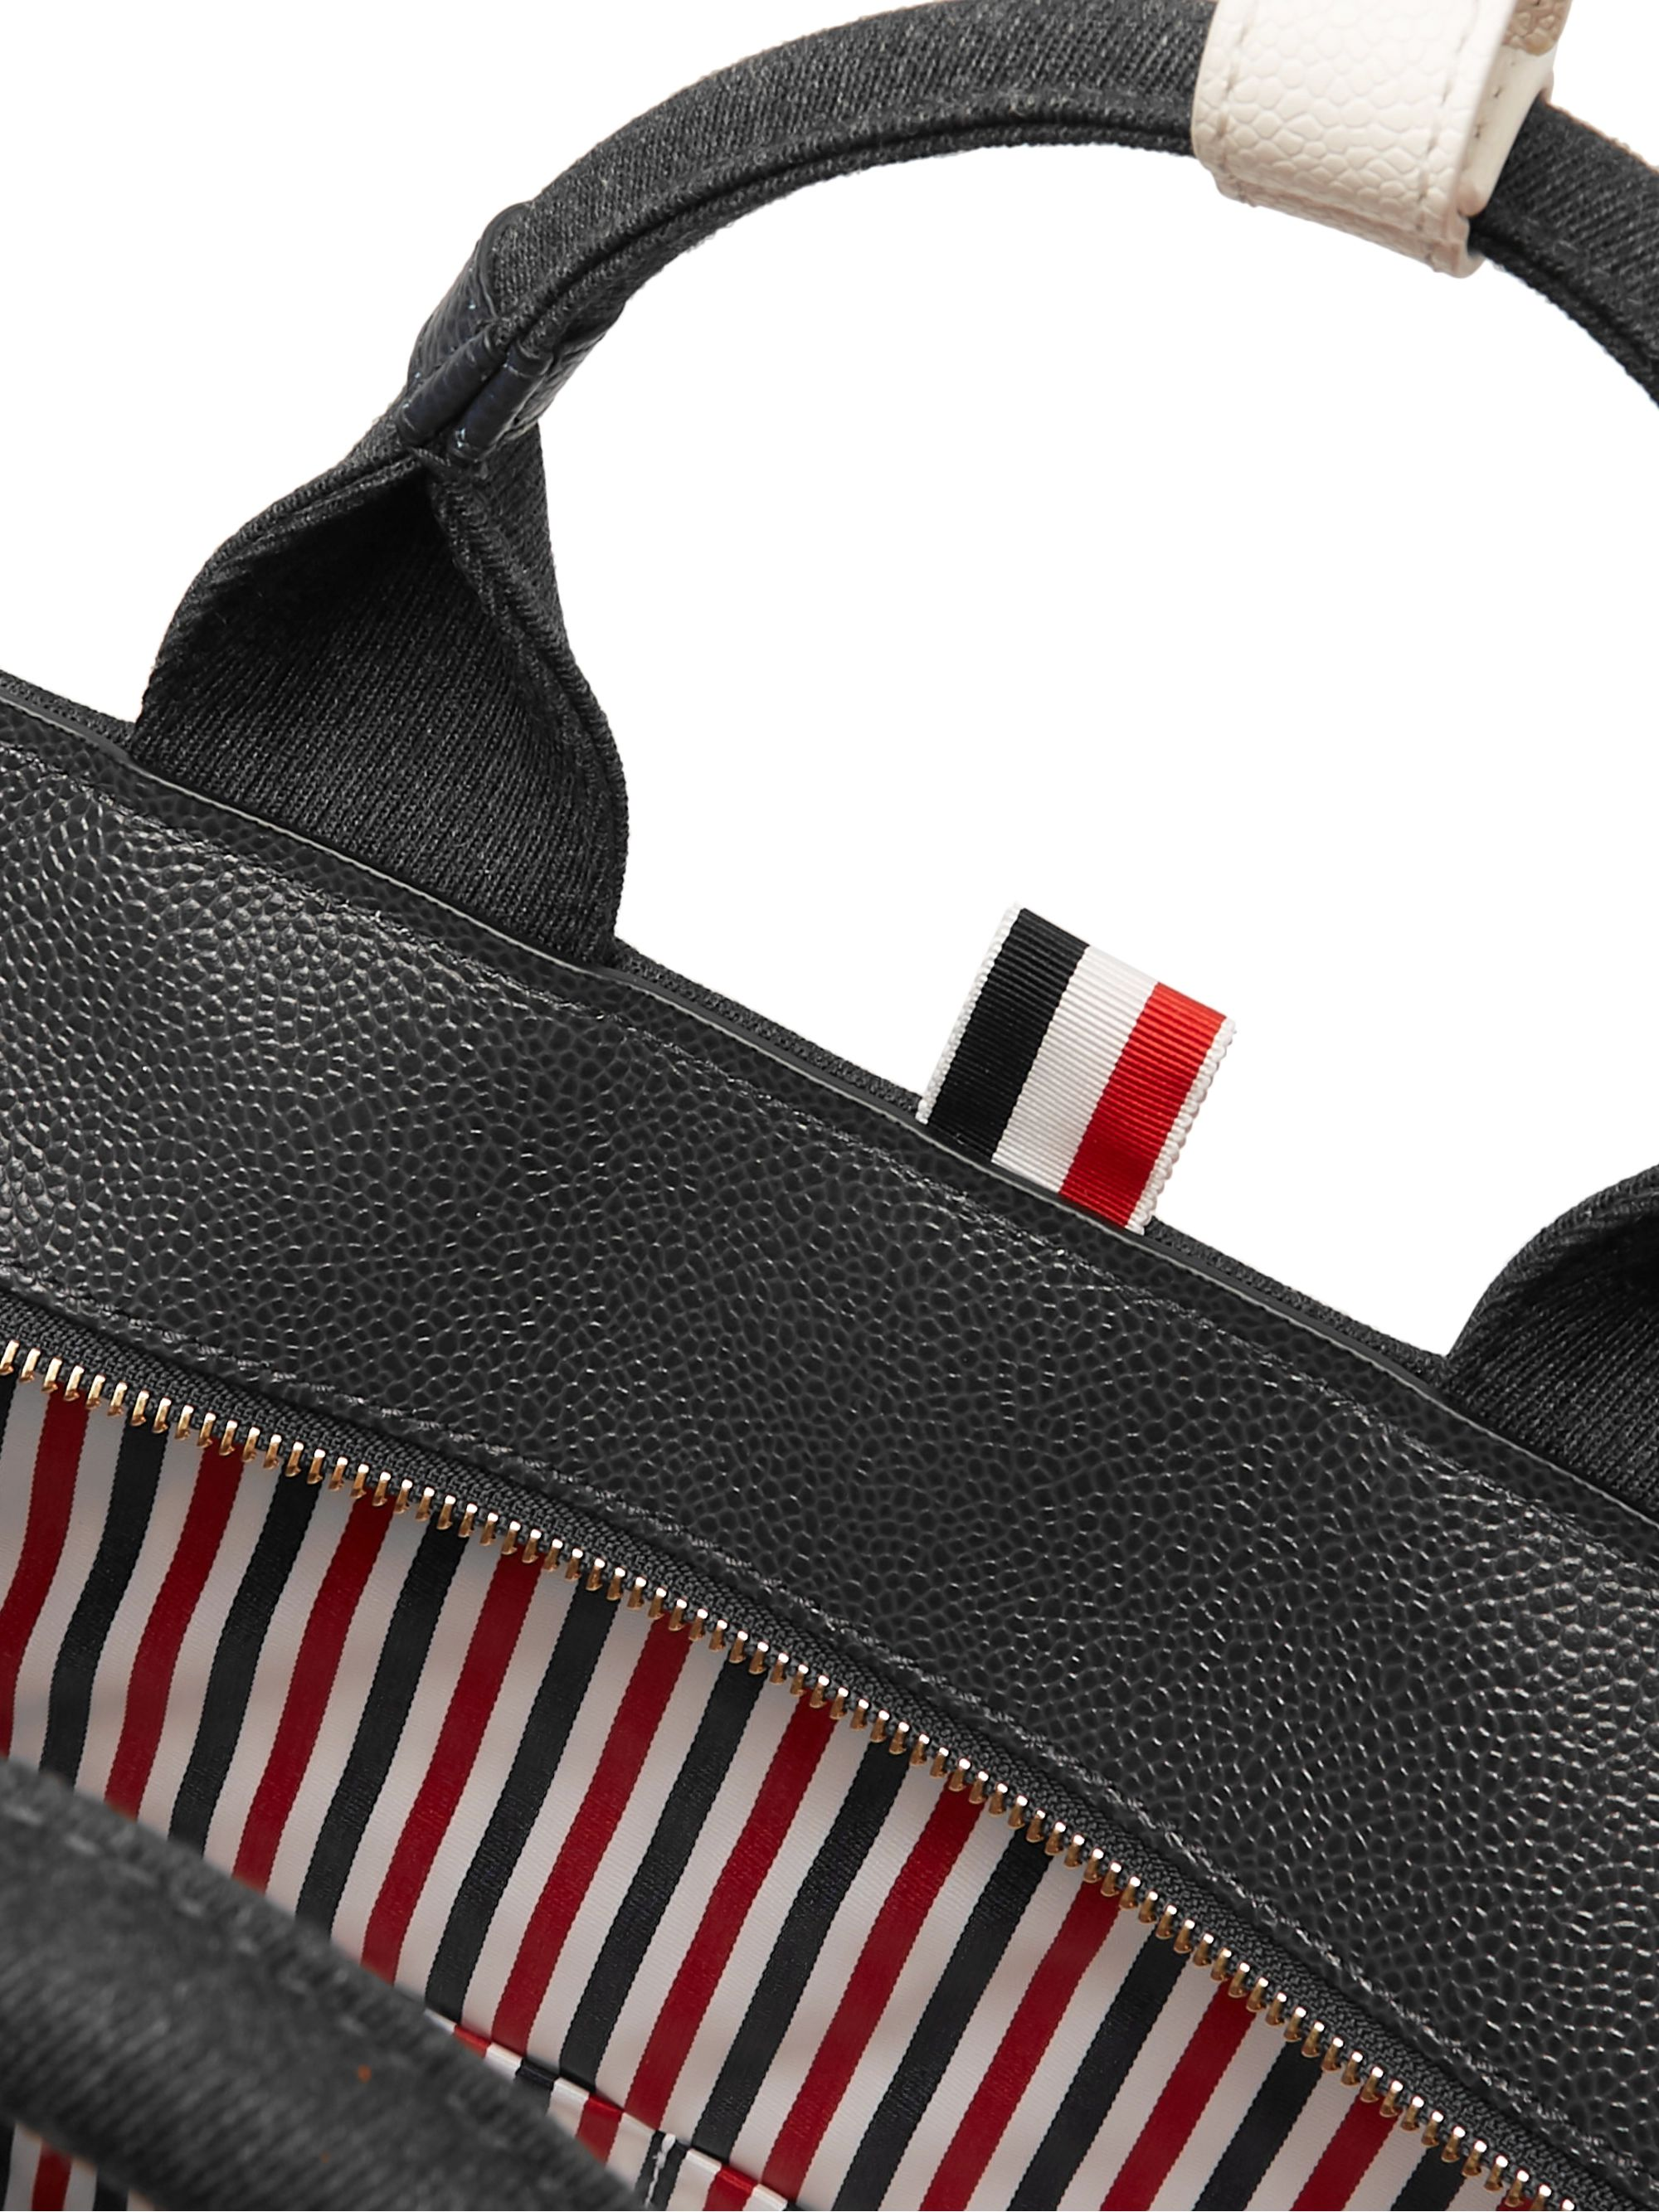 Thom Browne Pebble-Grain Leather-Trimmed Mélange Twill Tote Bag